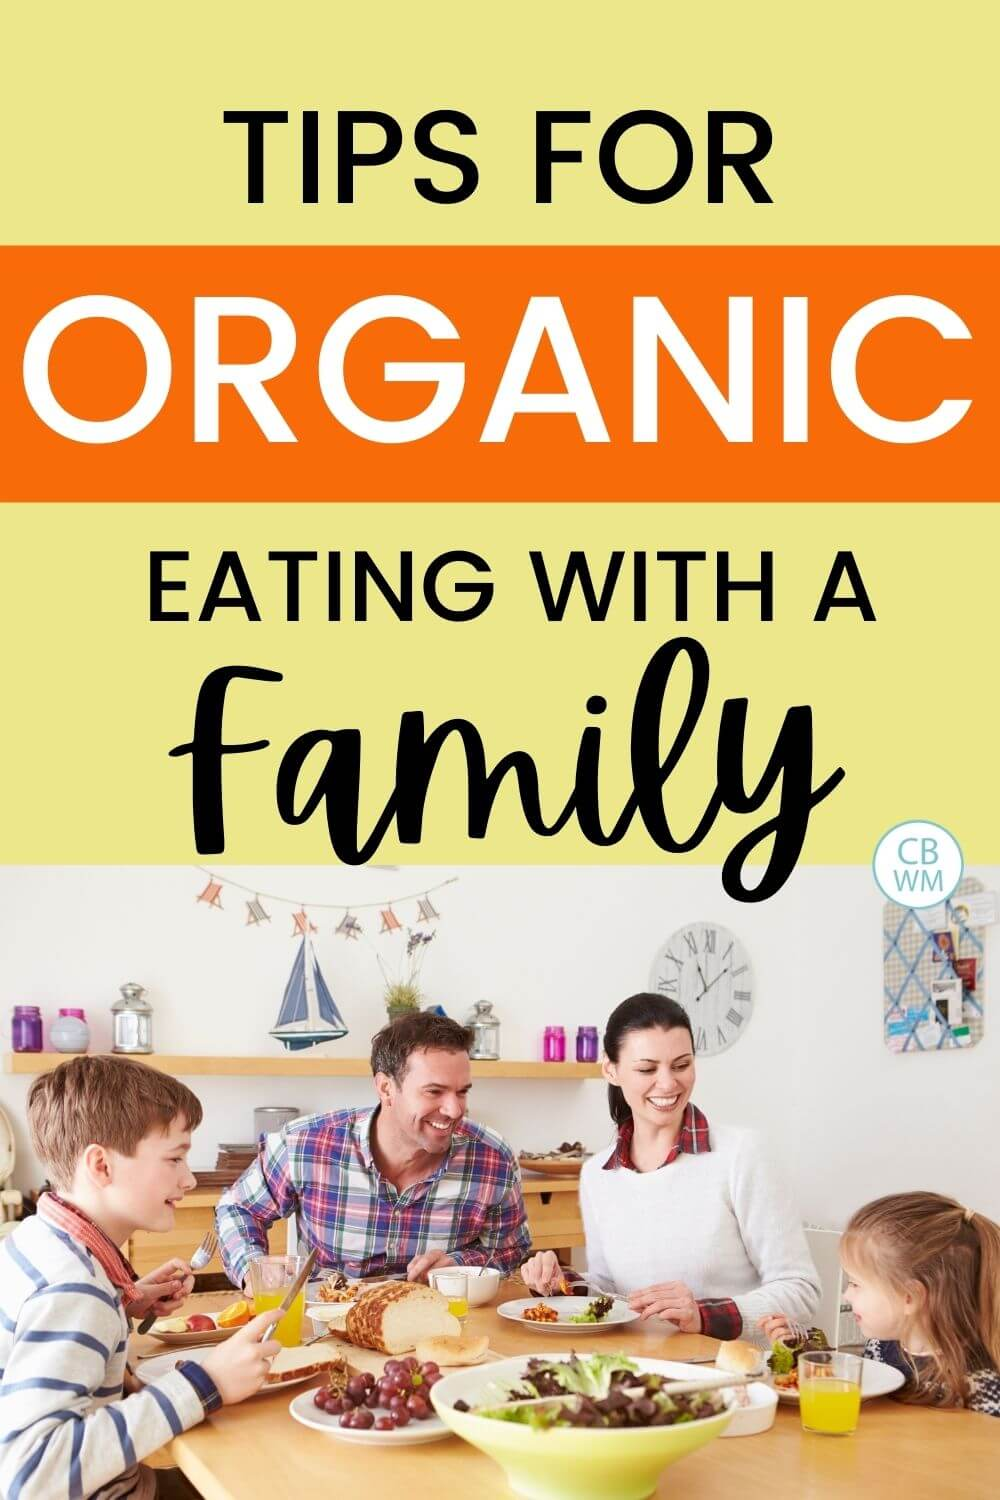 Tips for organic eating as a family